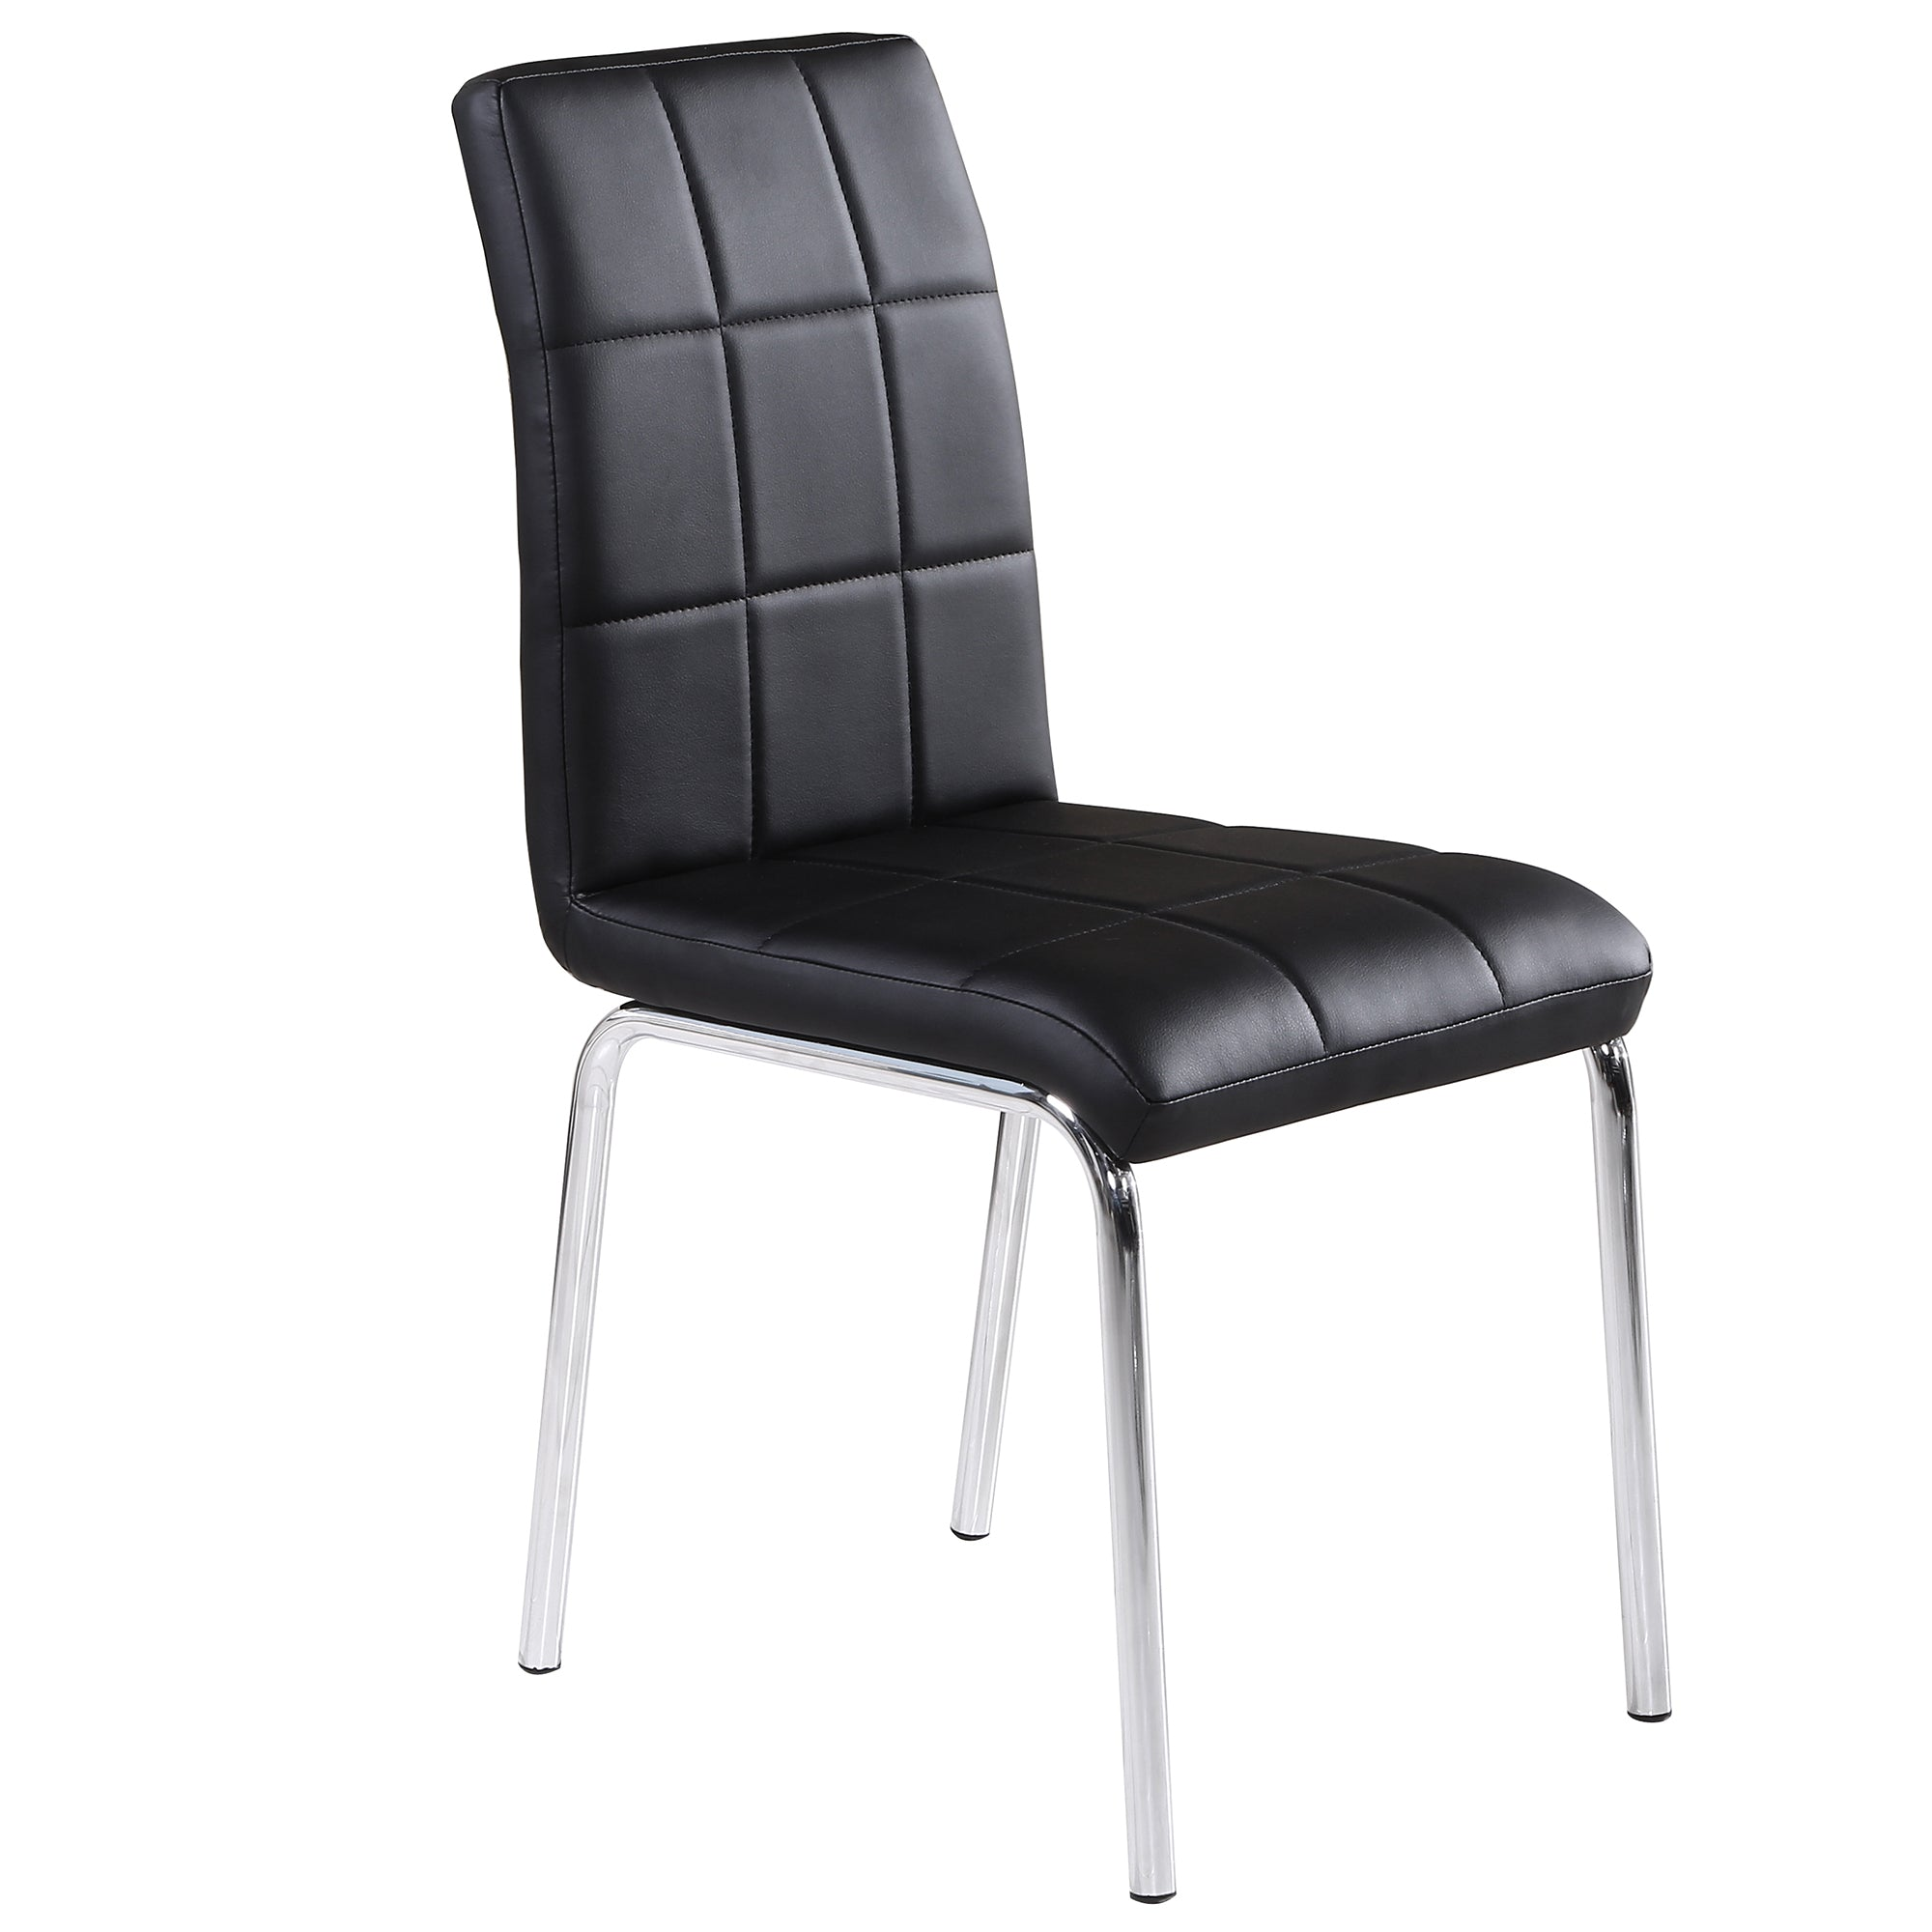 Solara II Side Chair, set of 4 in Black